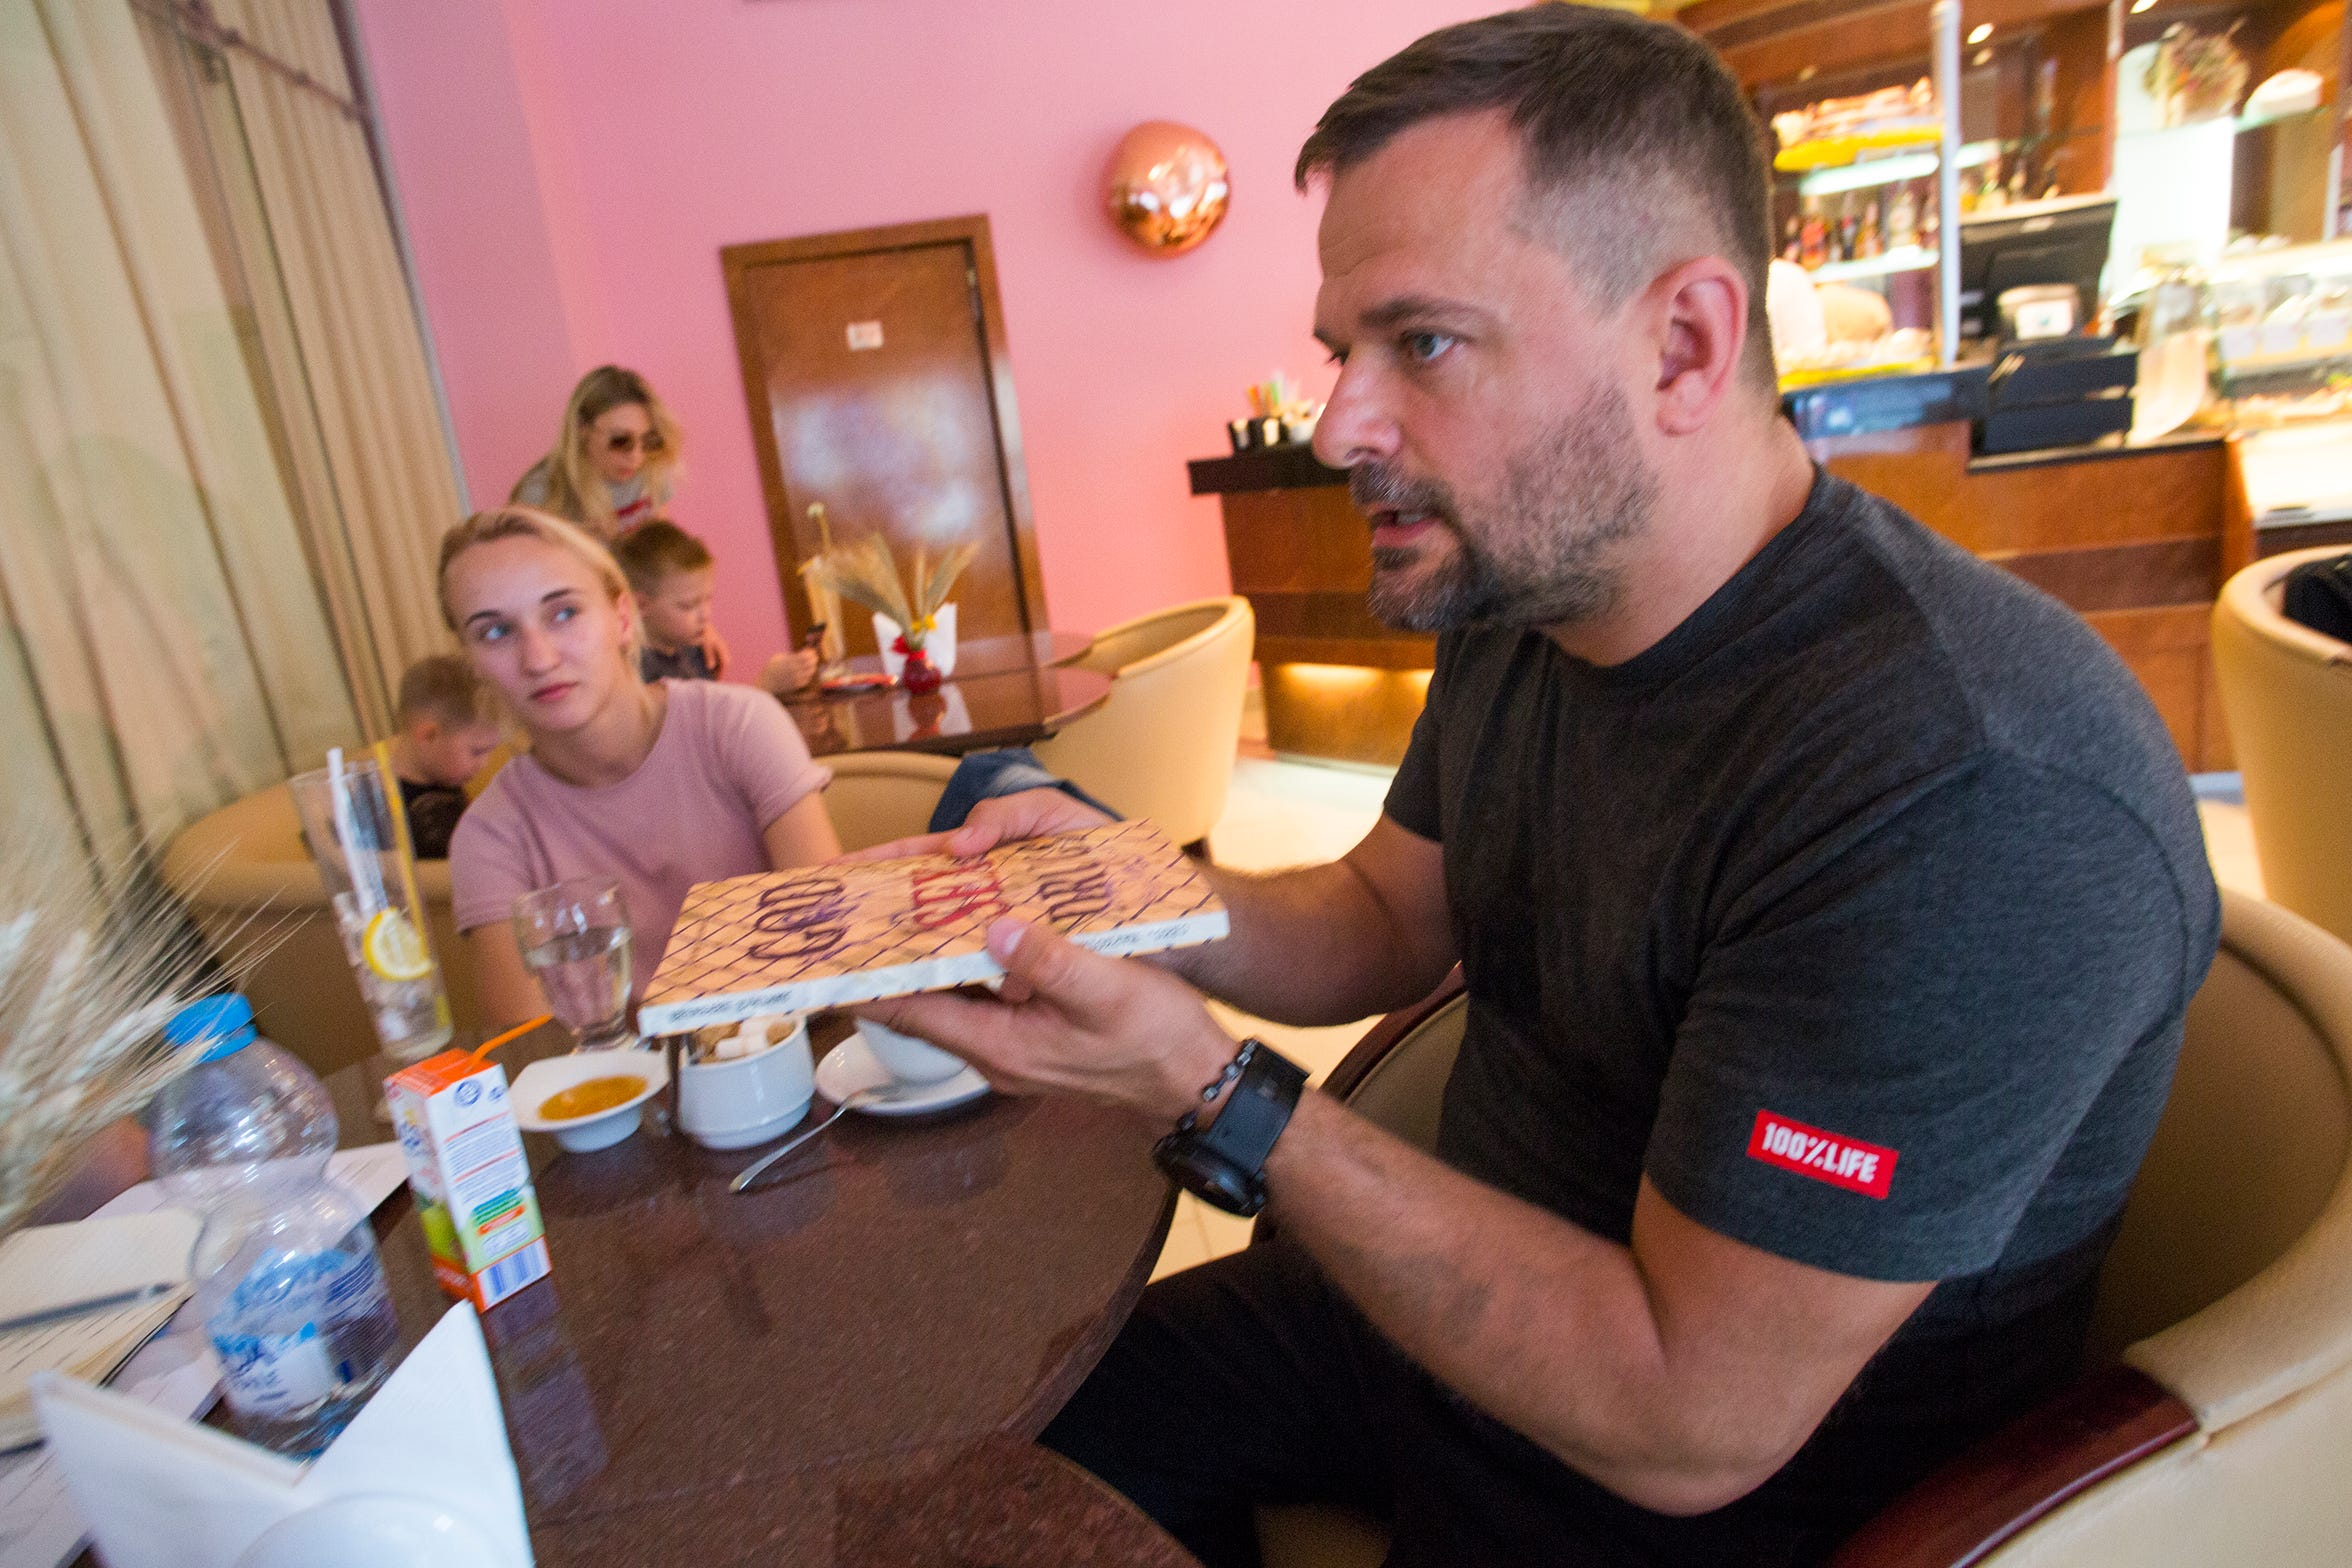 100% Life's Dmytro Sherembei, a Ukrainian activist for people living with HIV discusses his work and the situation in Ukraine at a cafe in Kyiv, Ukraine in August, 2019.